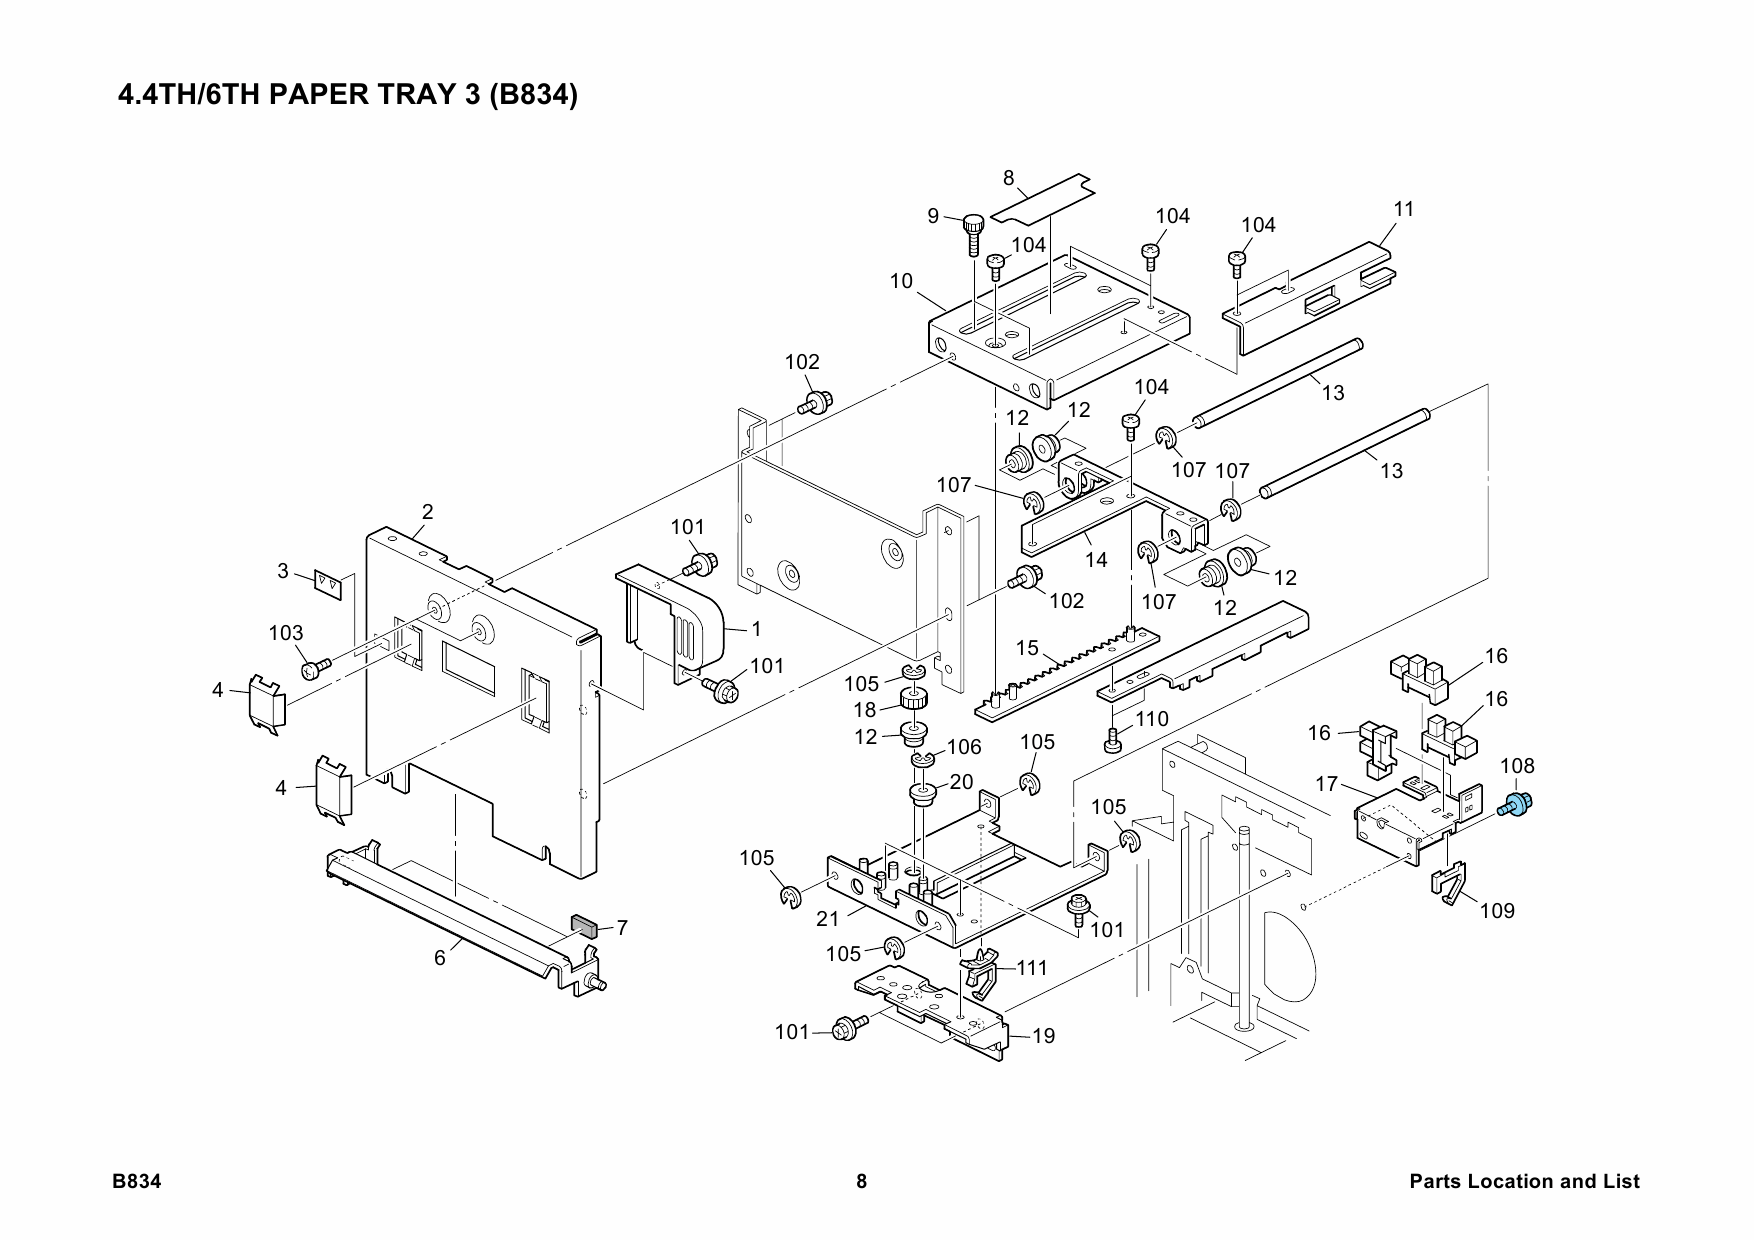 RICOH Options B834 LCIT-RT5010 Parts Catalog PDF download